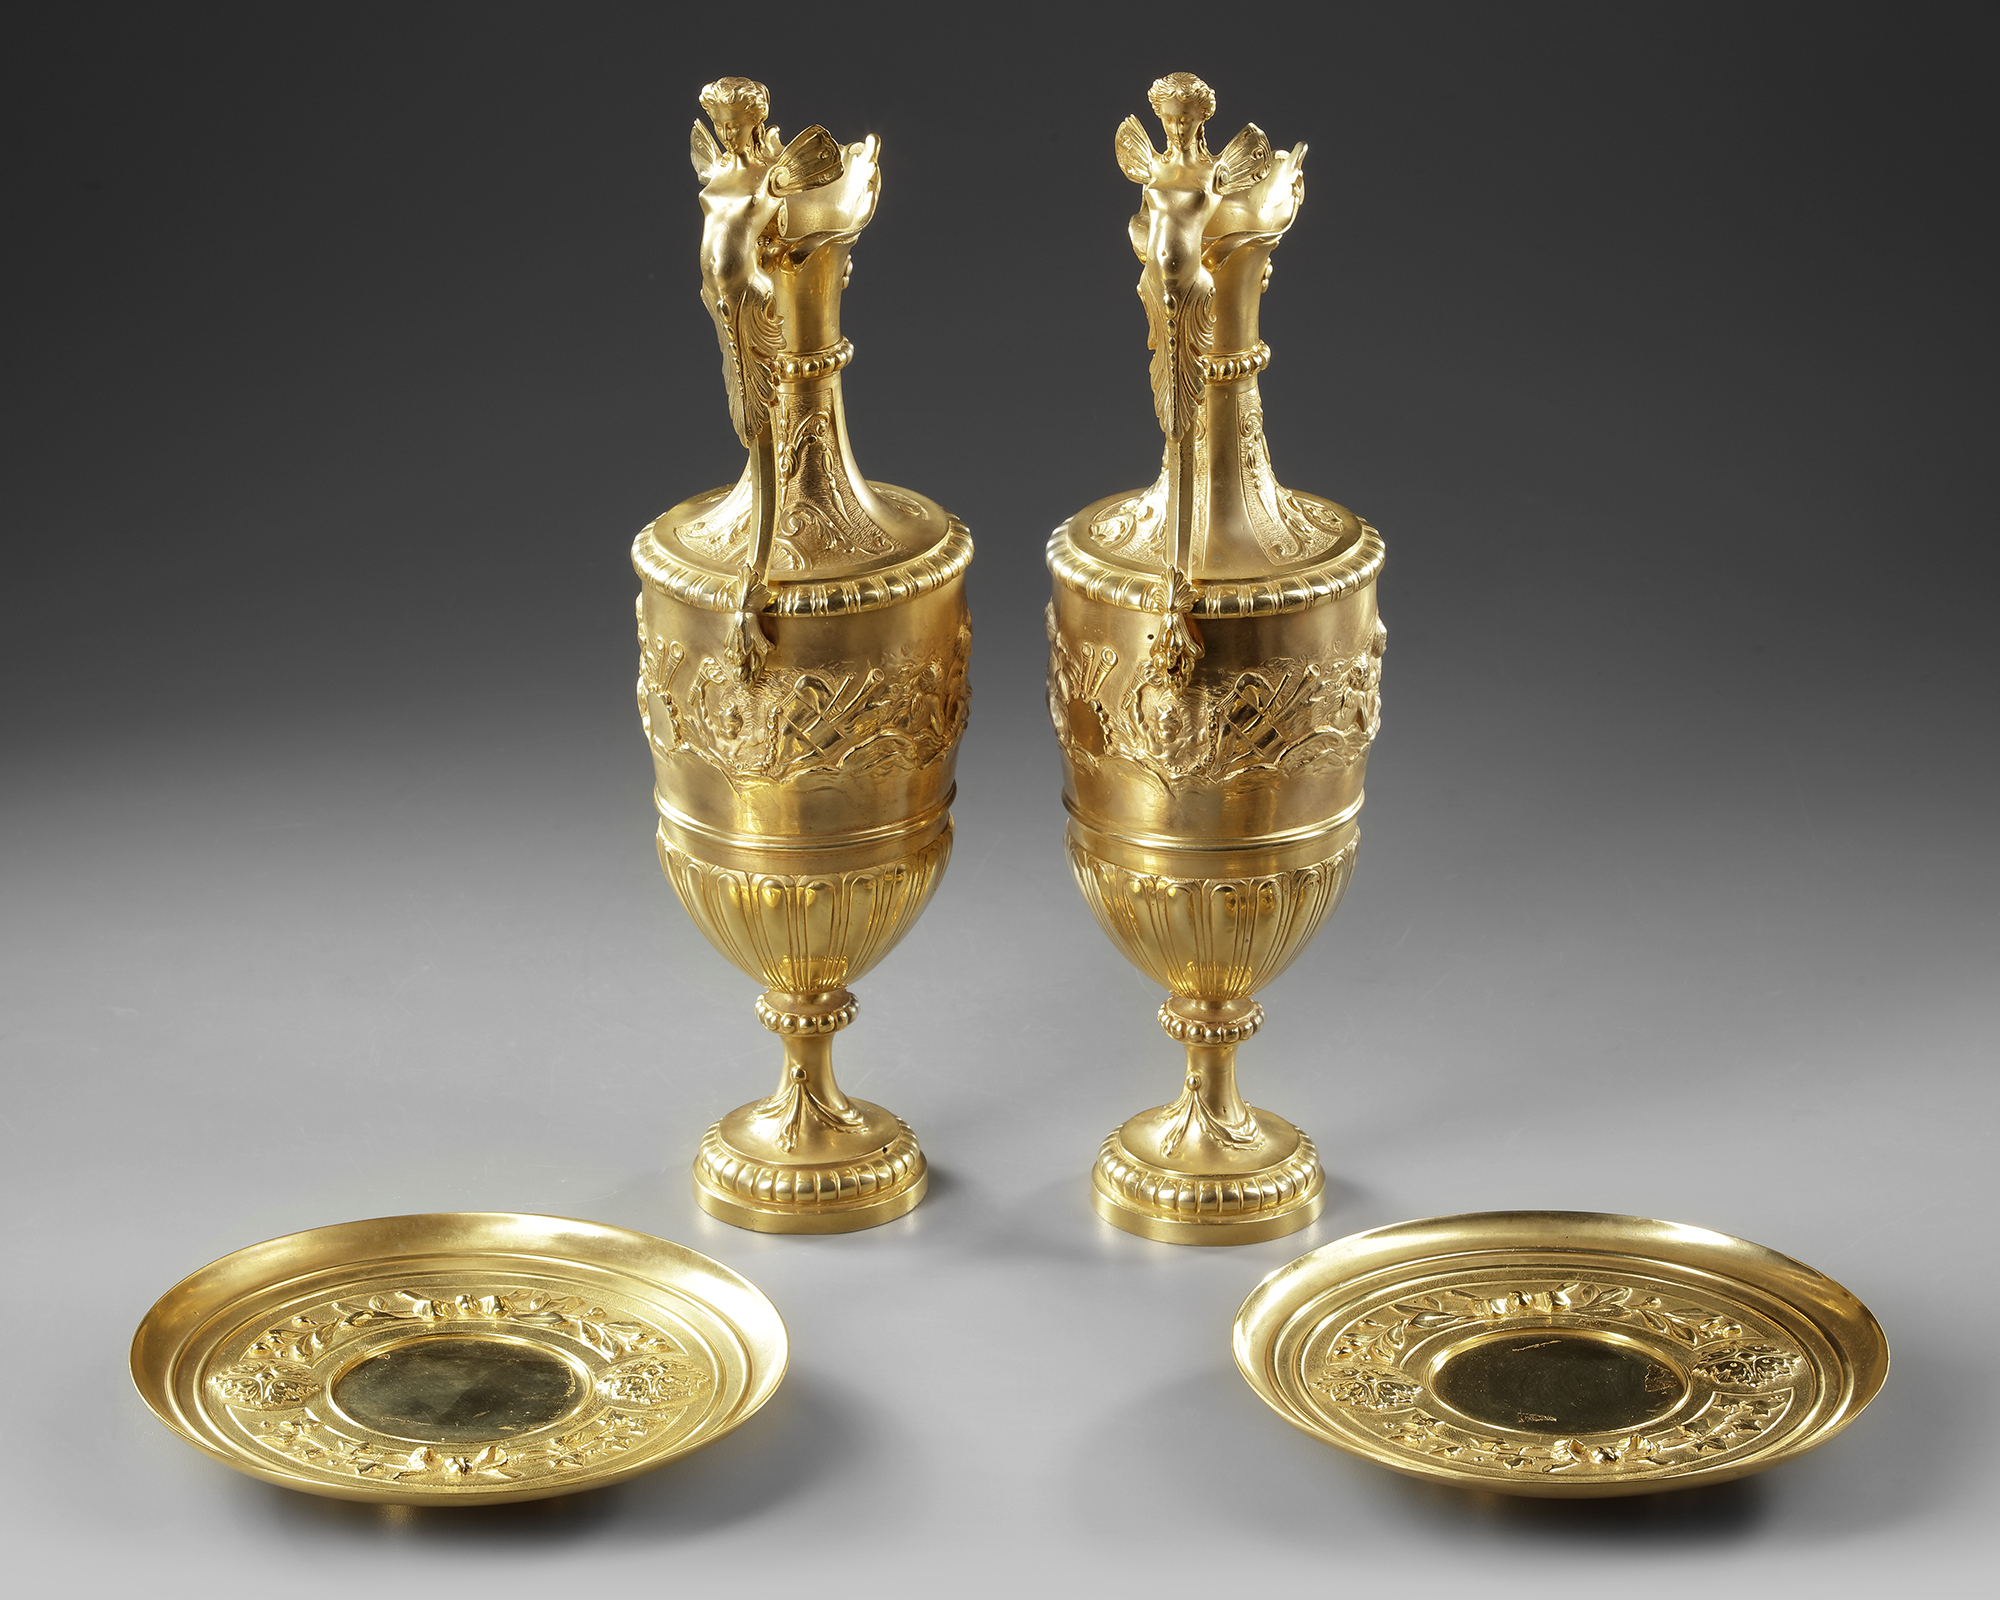 A PAIR OF FRENCH GILT BRONZE EWERS, 19TH CENTURY - Image 3 of 3